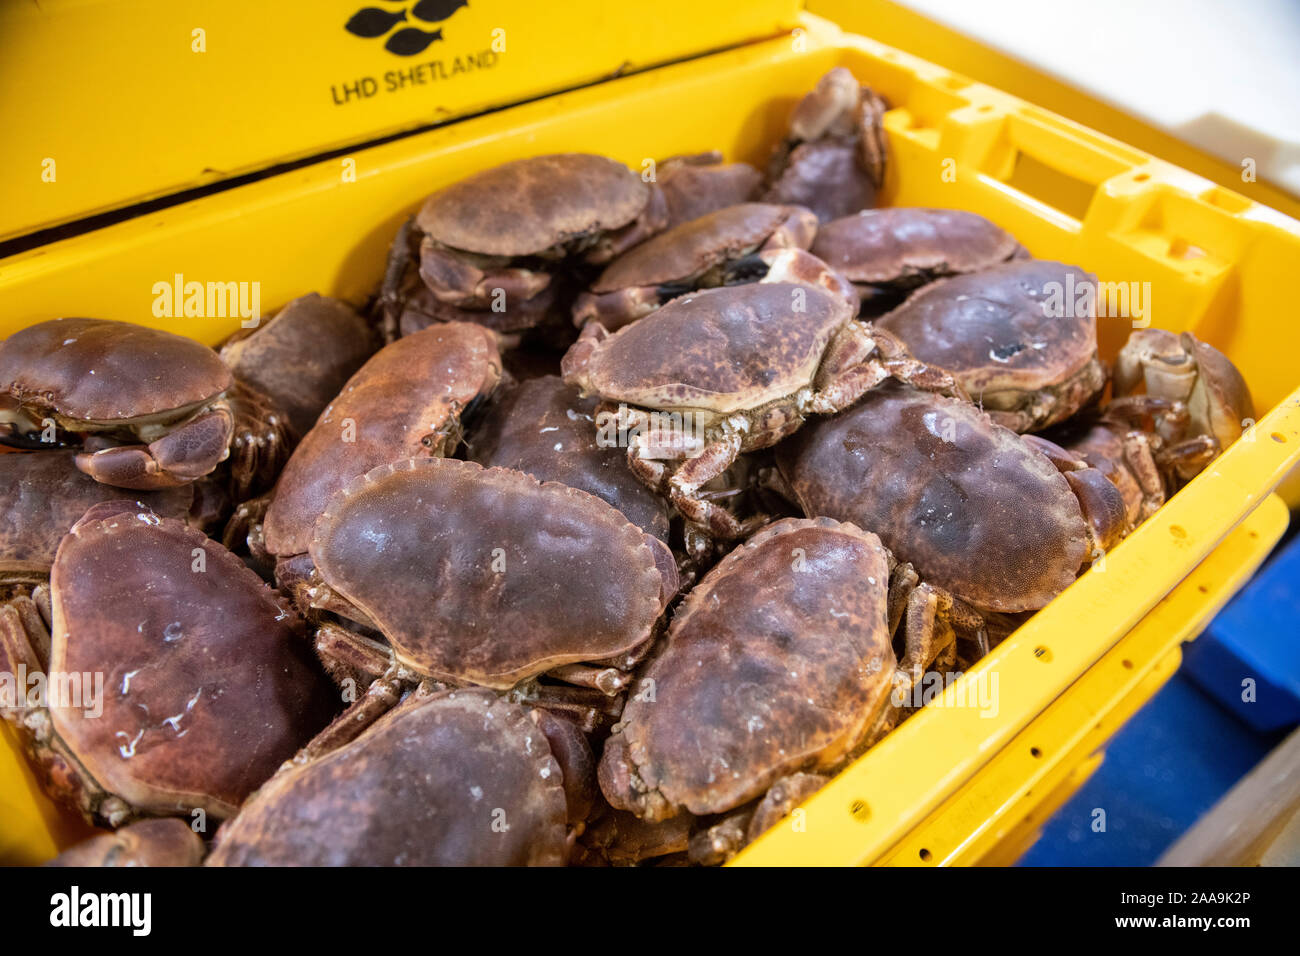 Edible crabs in fish boxes ready for transport to the open market in a factory in Shetland Stock Photo